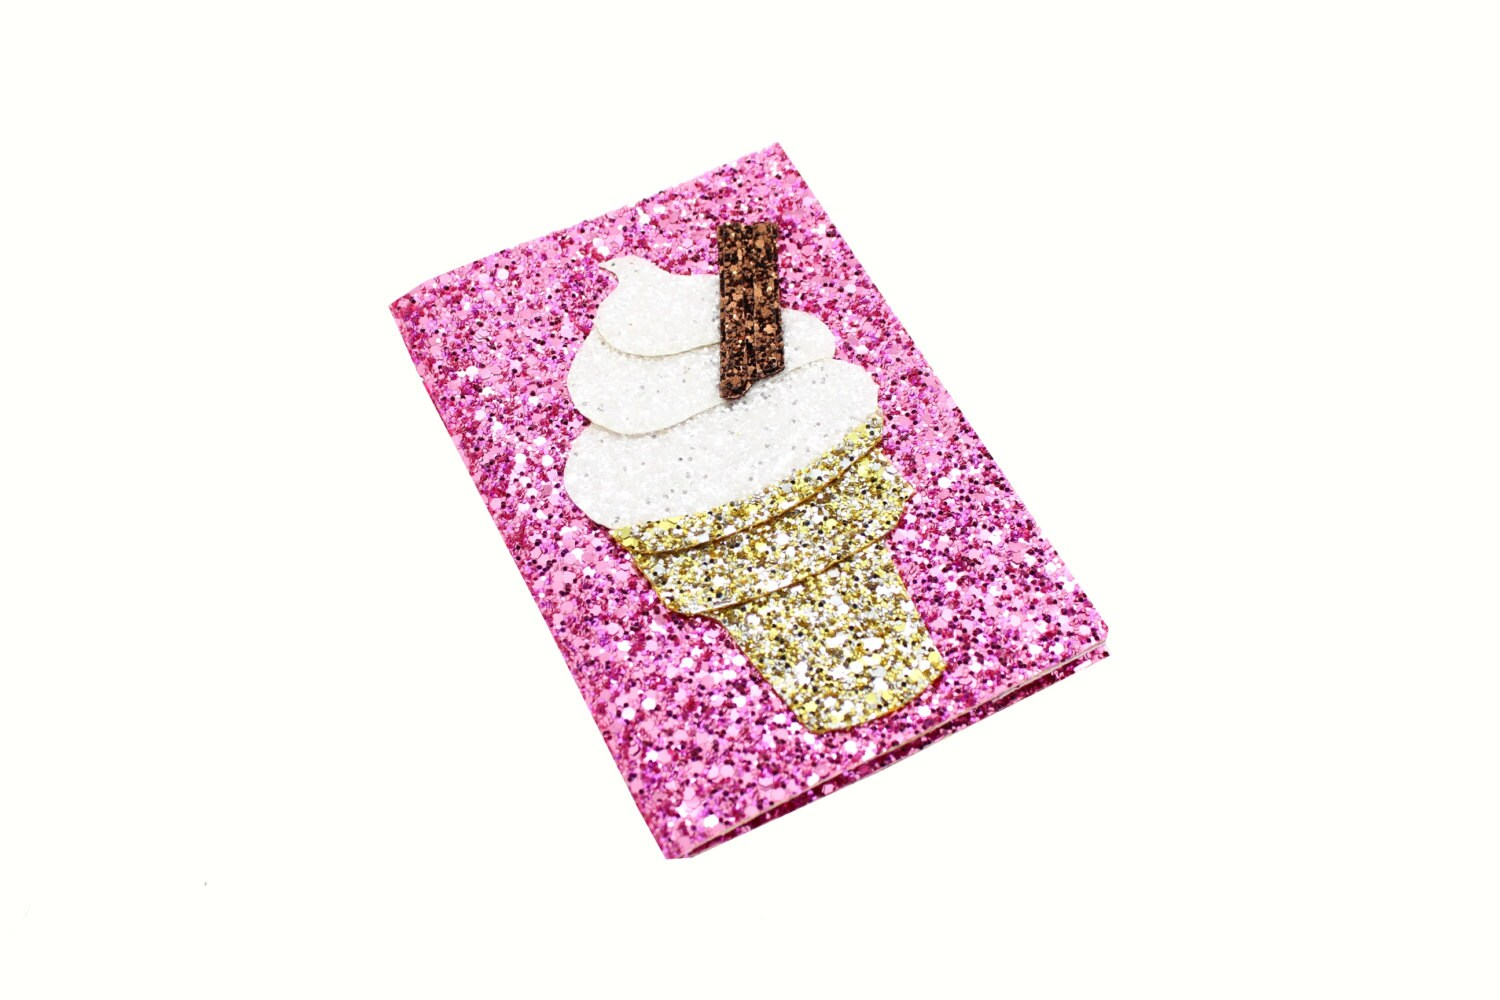 Ice Cream Passport Cover Pink Glitter Fabric Wallet Travel Gift